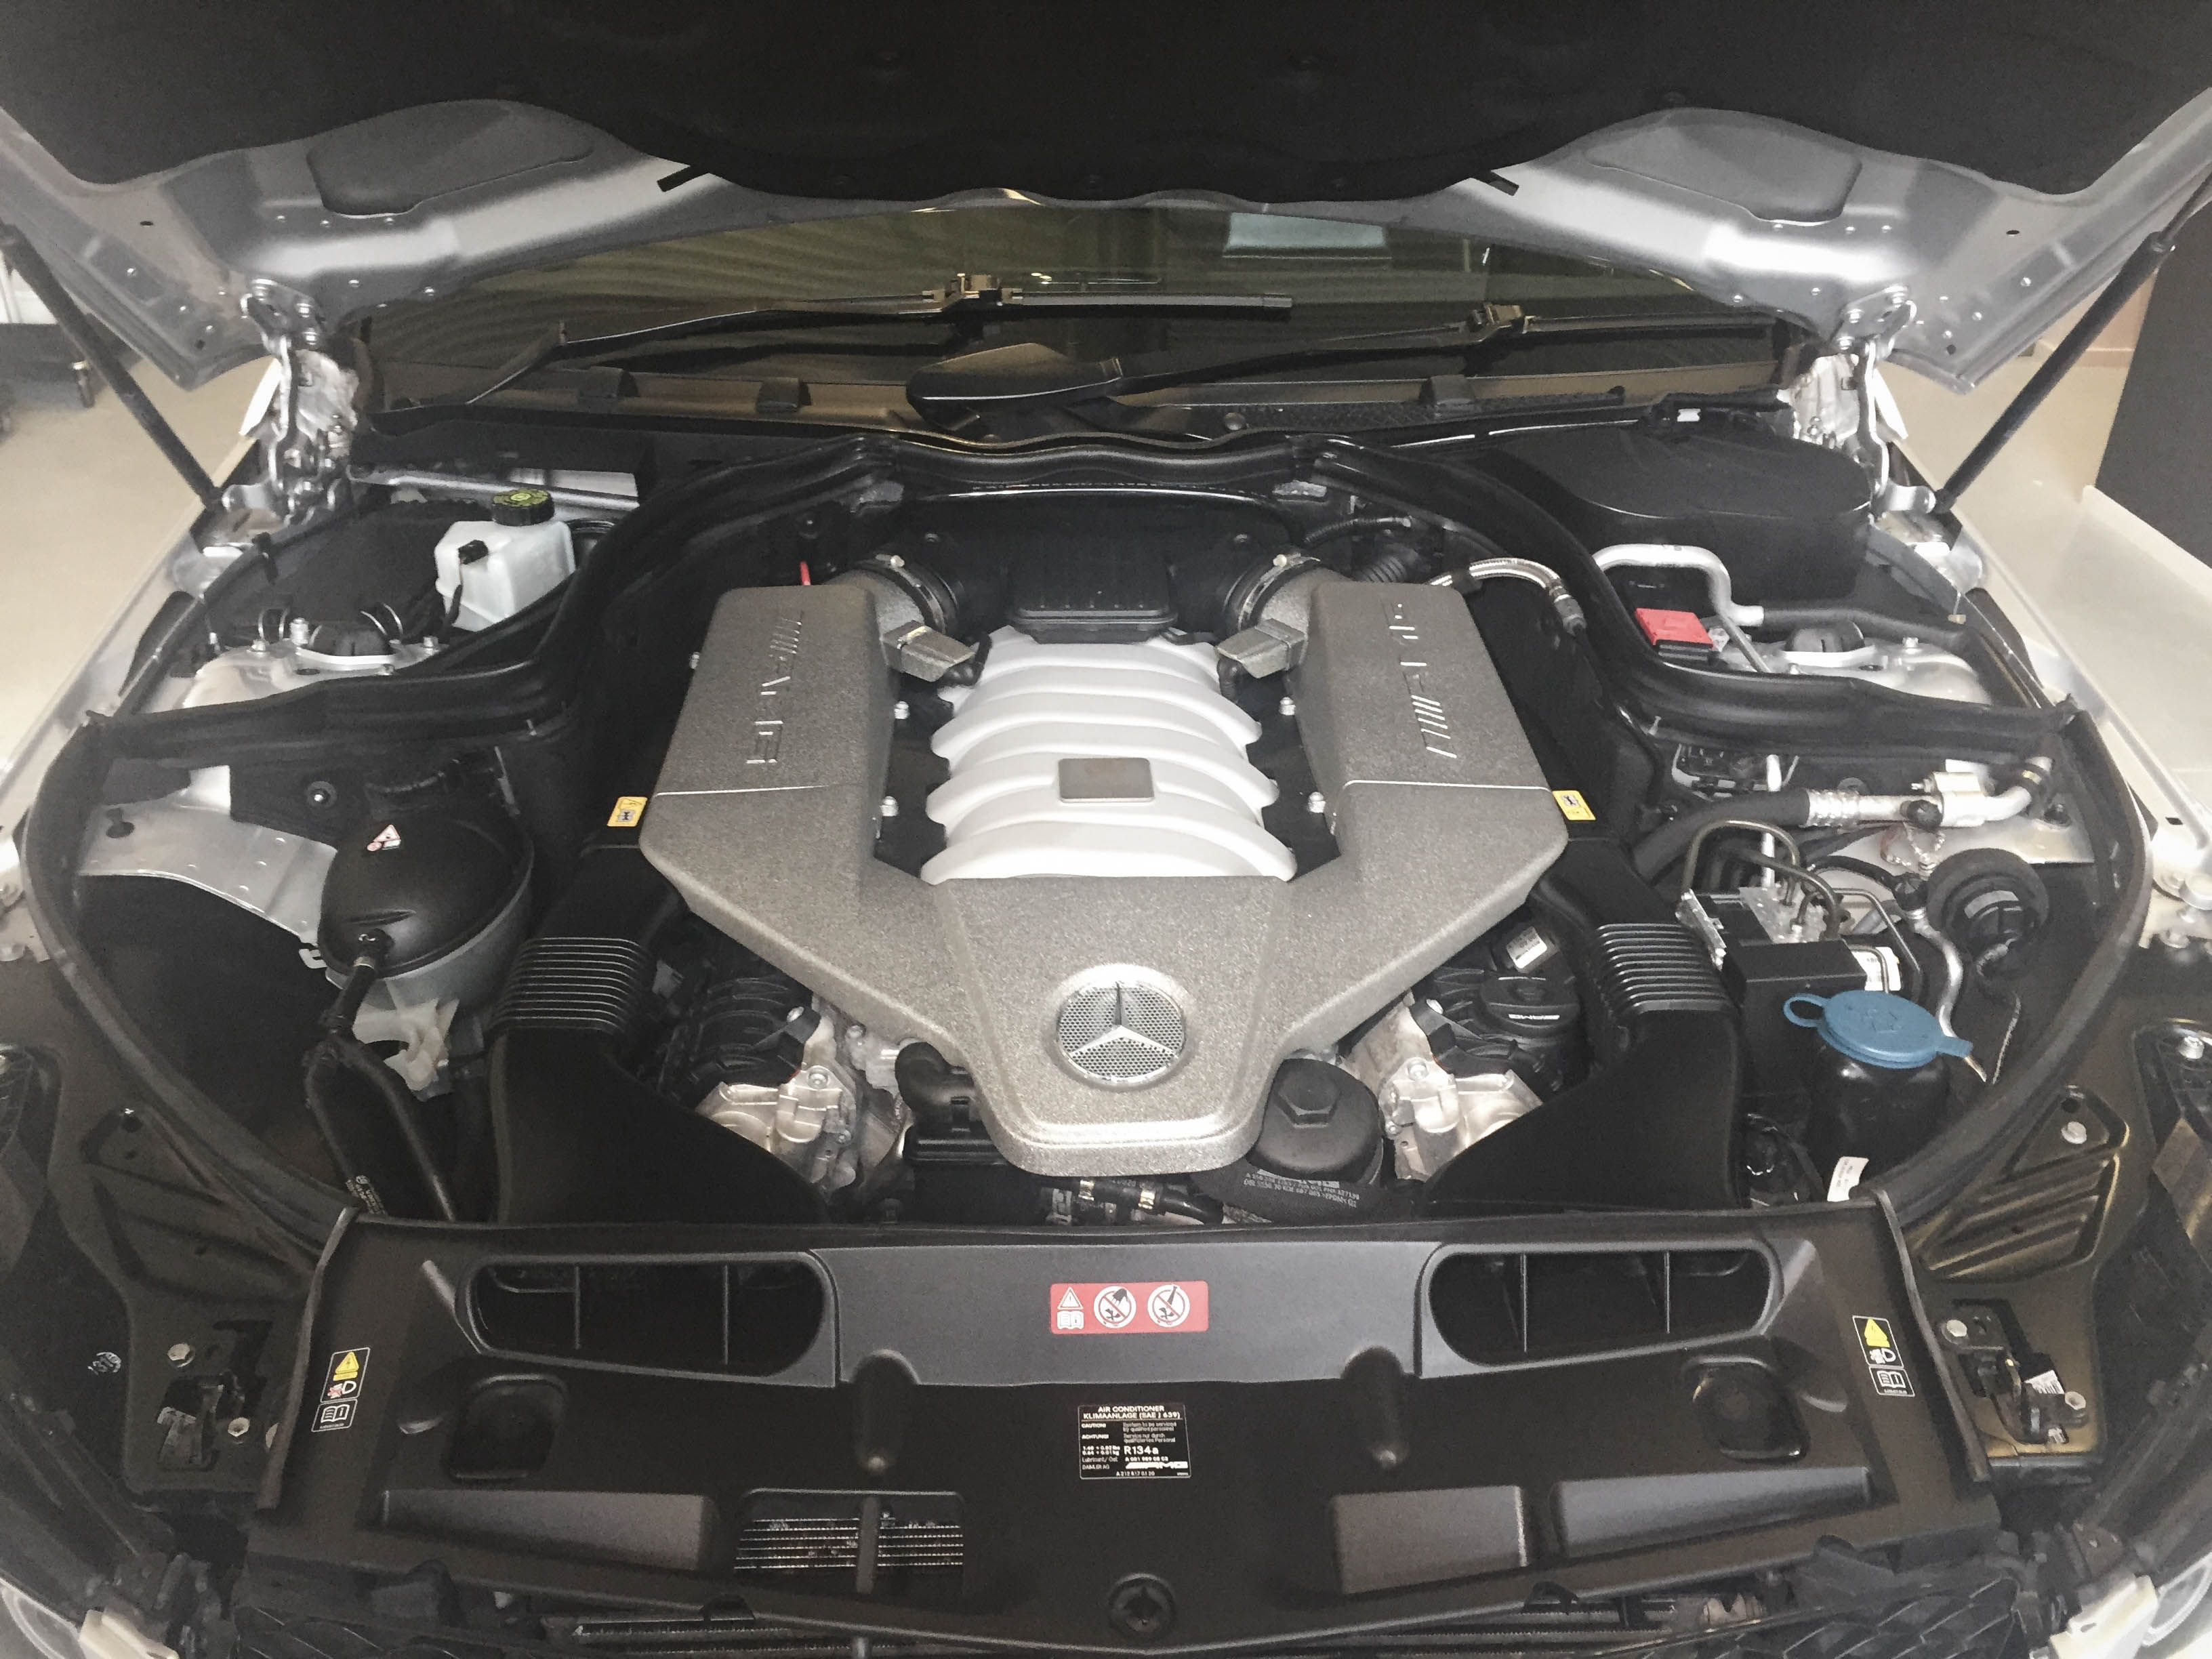 Mercedes C63 AMG – Engine